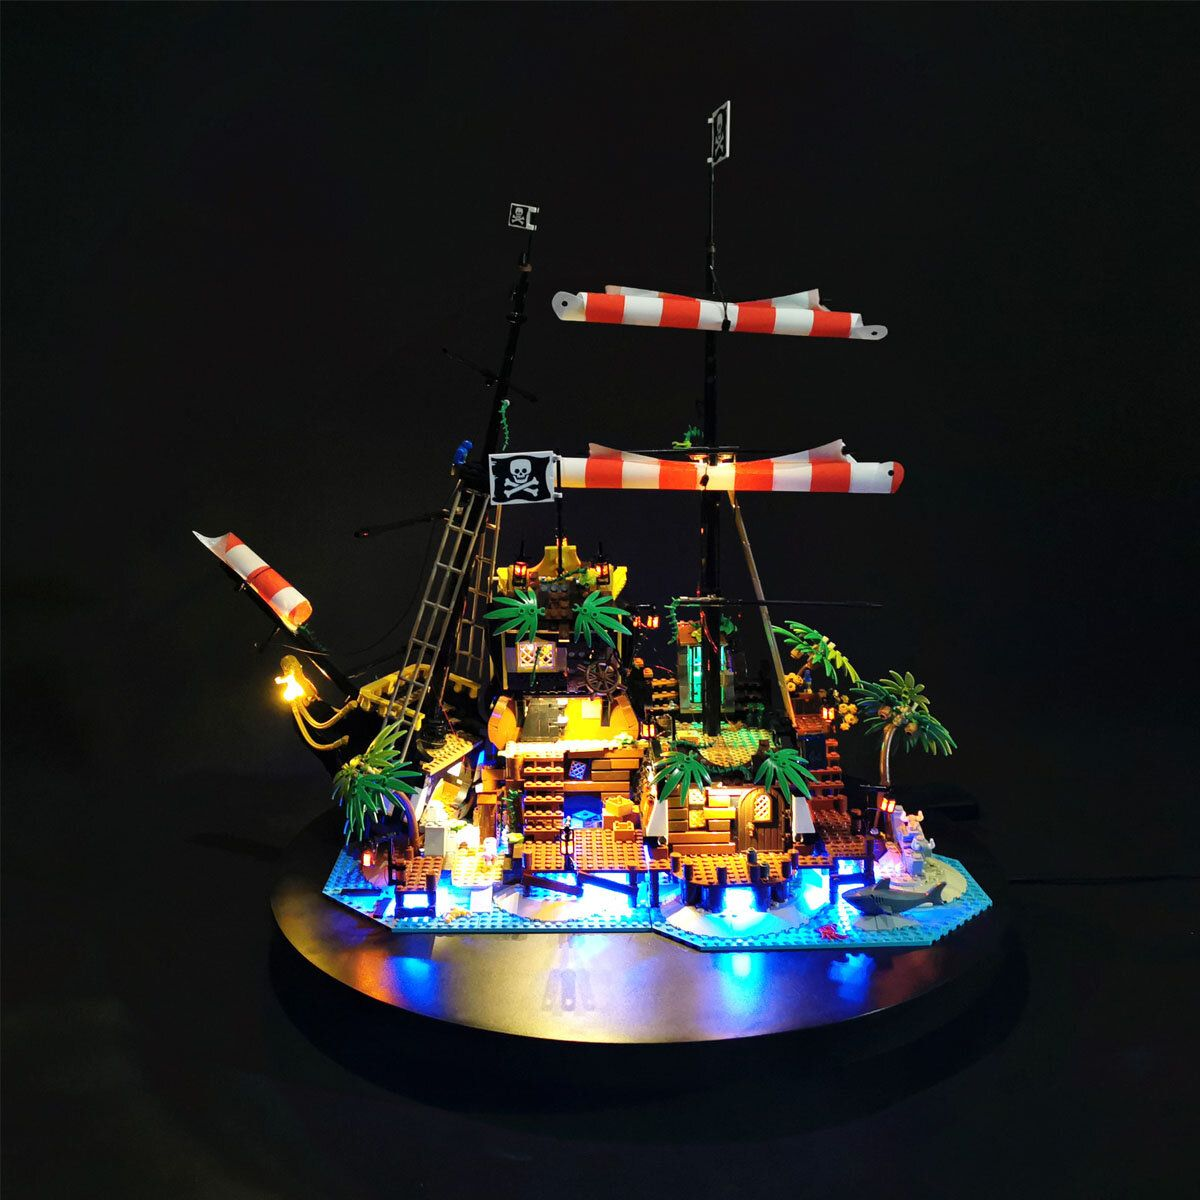 LED Light Lighting ONLY Fit For LEGO 21322 Pirates of Barracuda Bay Bricks Toy